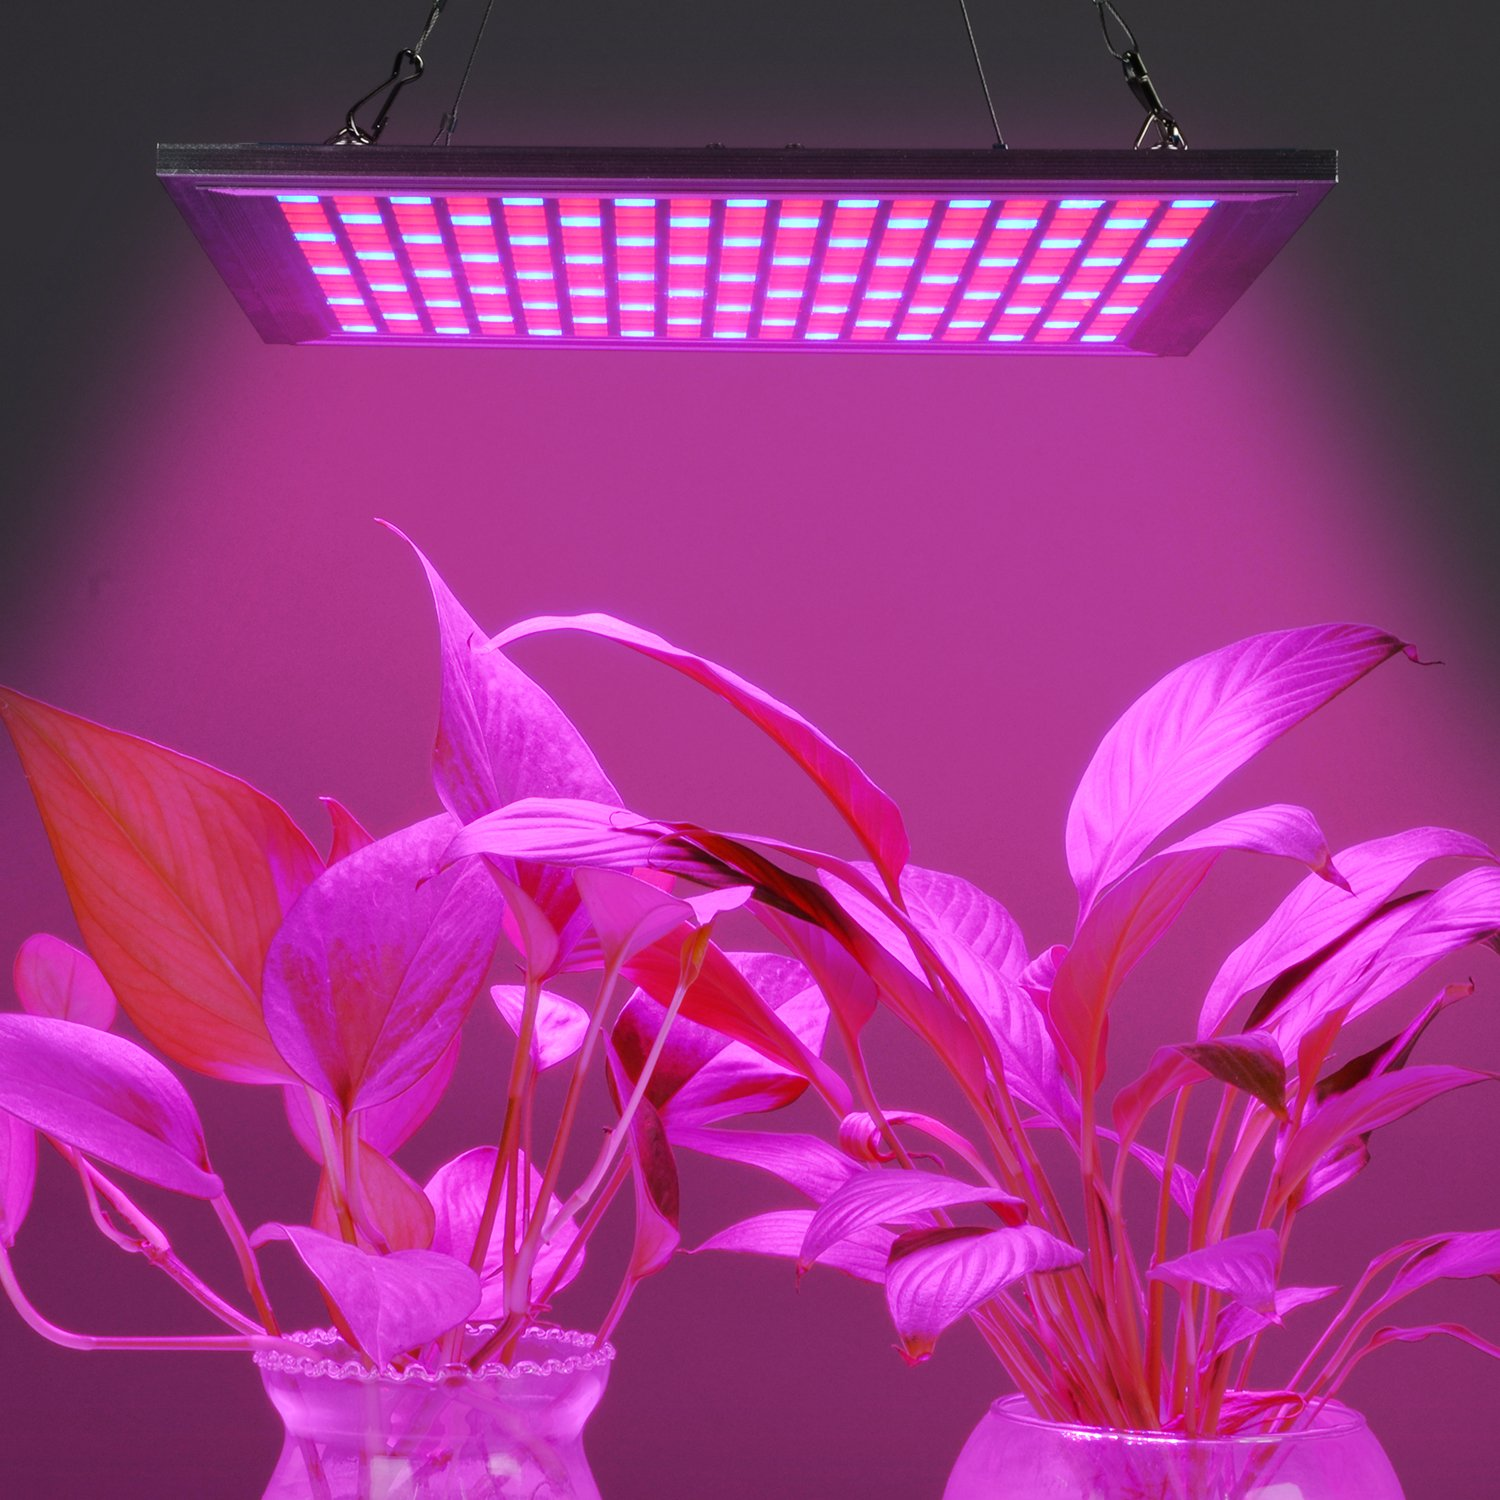 LED Grow Light for Indoor Plants Growing Lamp 150W 289 LEDs Dimmable Plant Lights Bulb Panel Hanging Kit for Seedling Hydroponics Greenhouse Veg and Flower by Hytekgro by Hytekgro (Image #5)